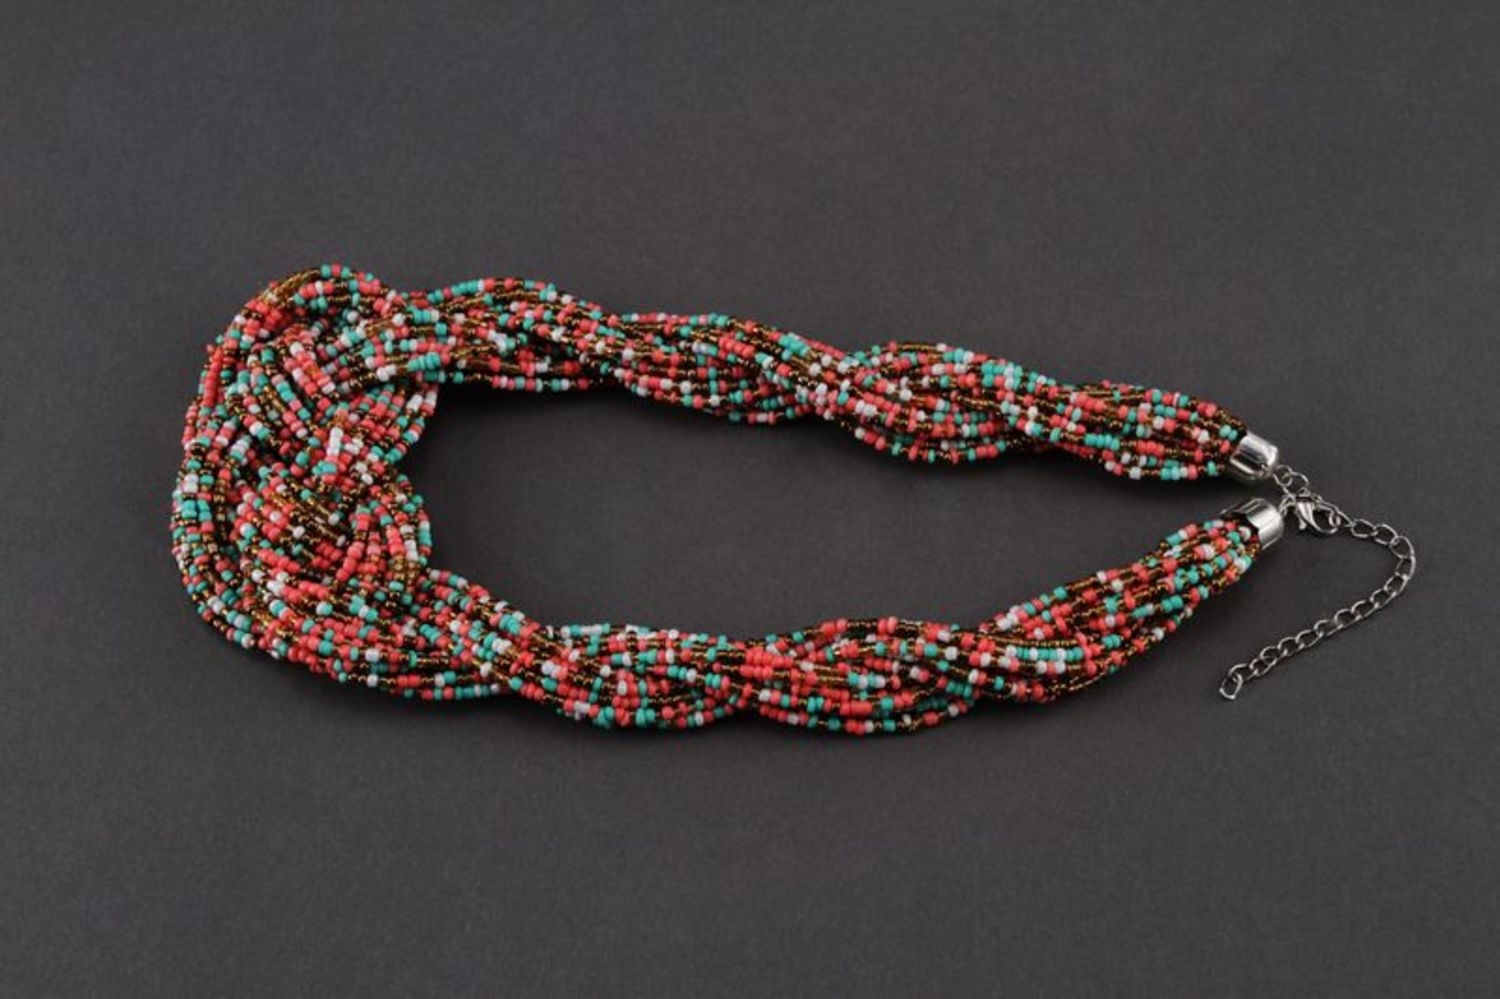 Necklace made of multicoloured beads photo 3